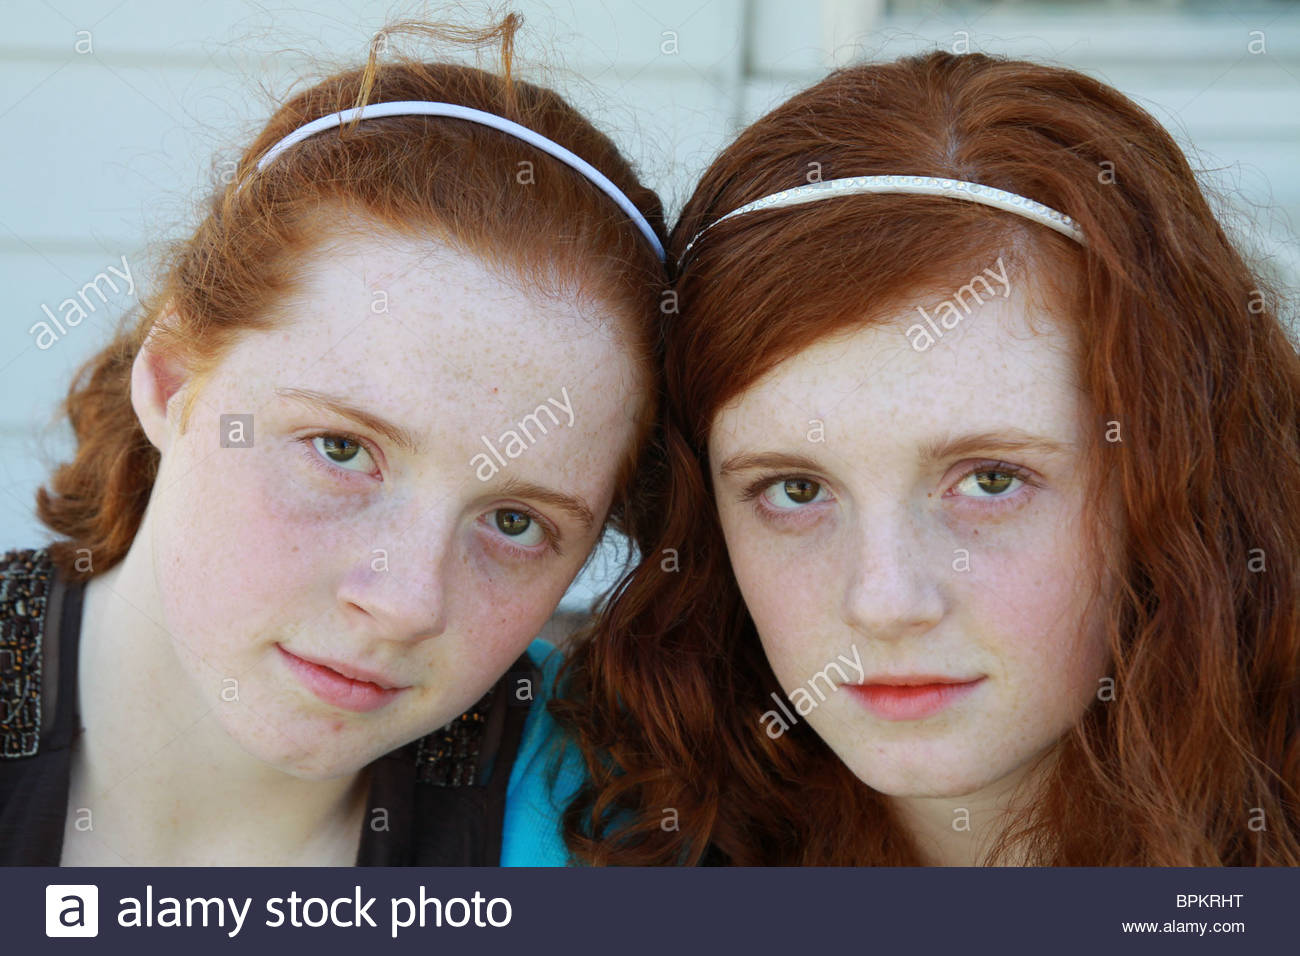 A close up of 14 year old identical twin sisters with red hair. - Stock Image